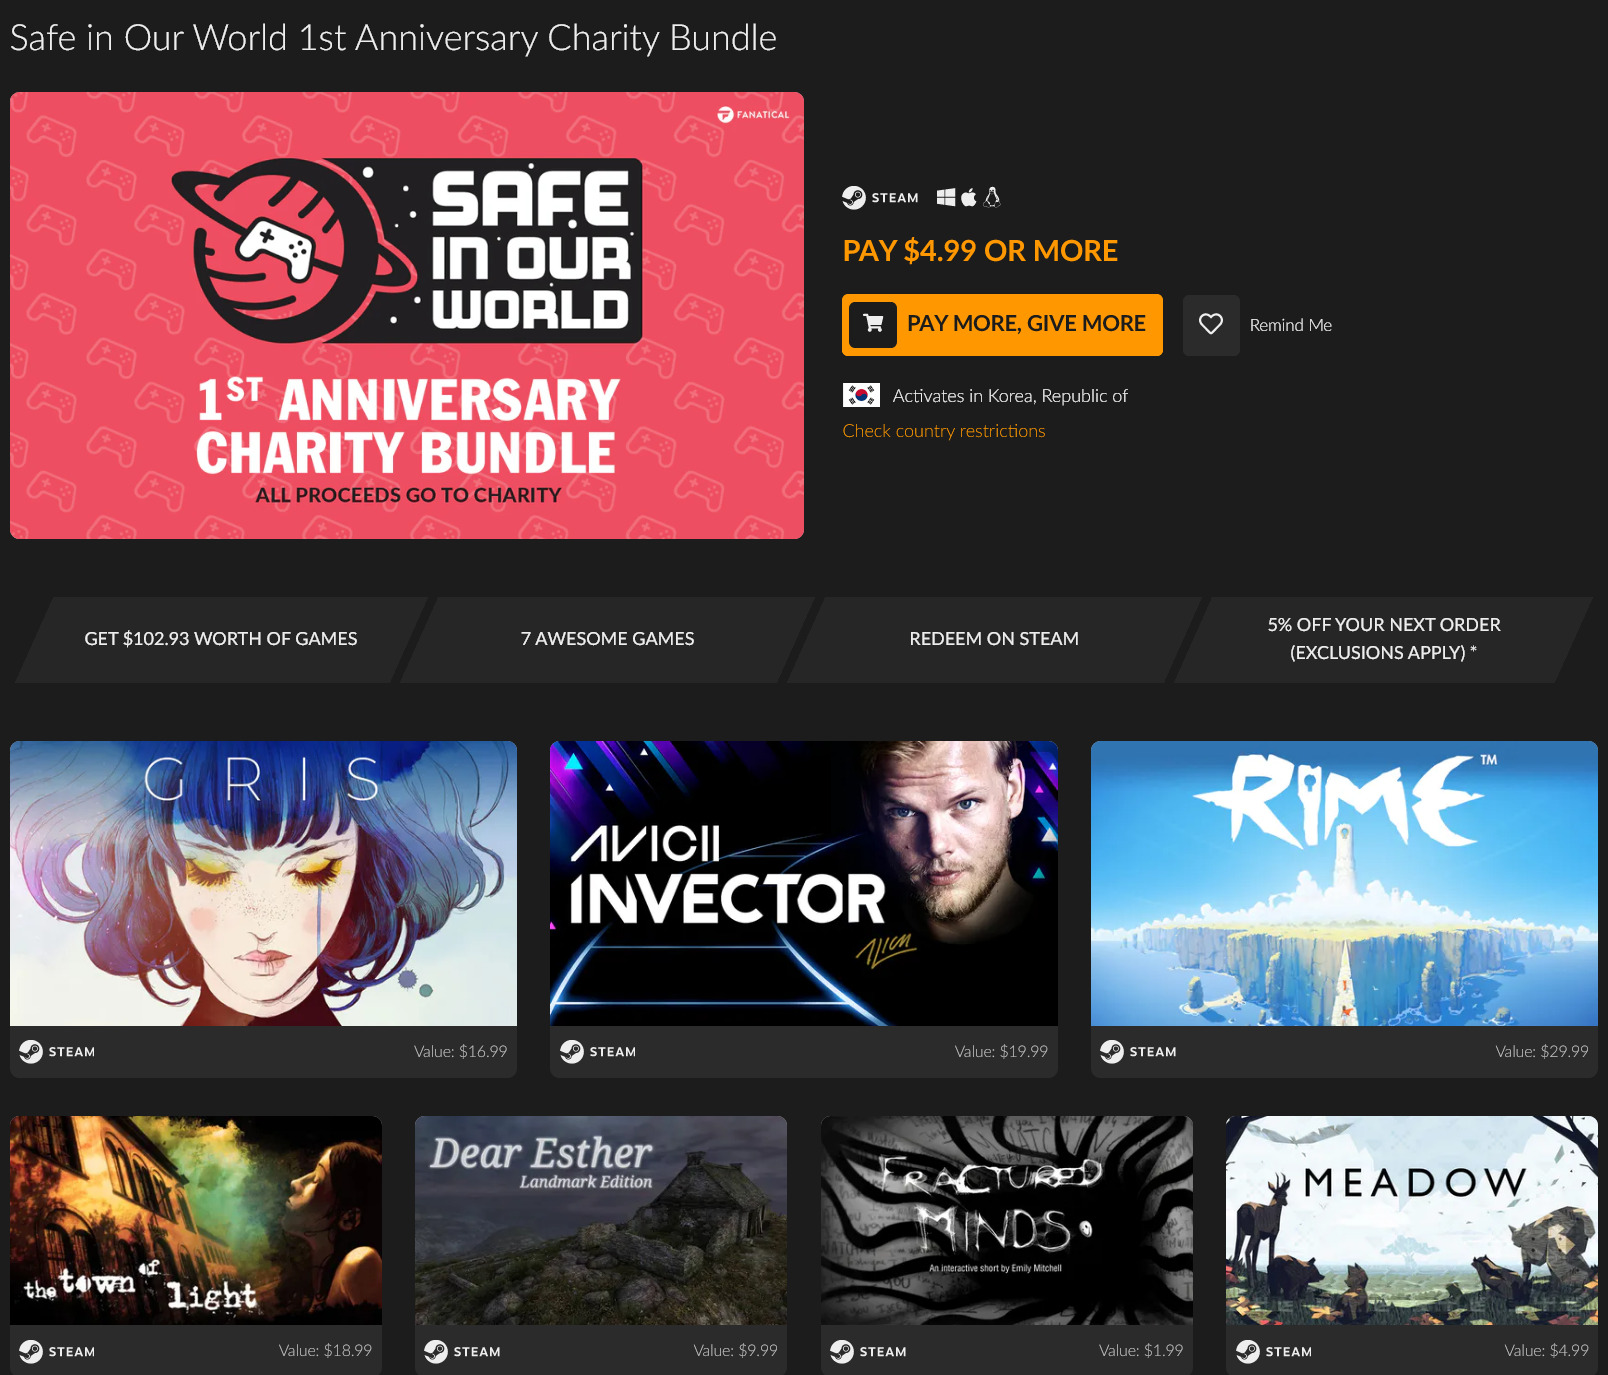 Screenshot_2020-10-22 Safe in Our World 1st Anniversary Charity Bundle Steam Game Bundle Fanatical.jpg